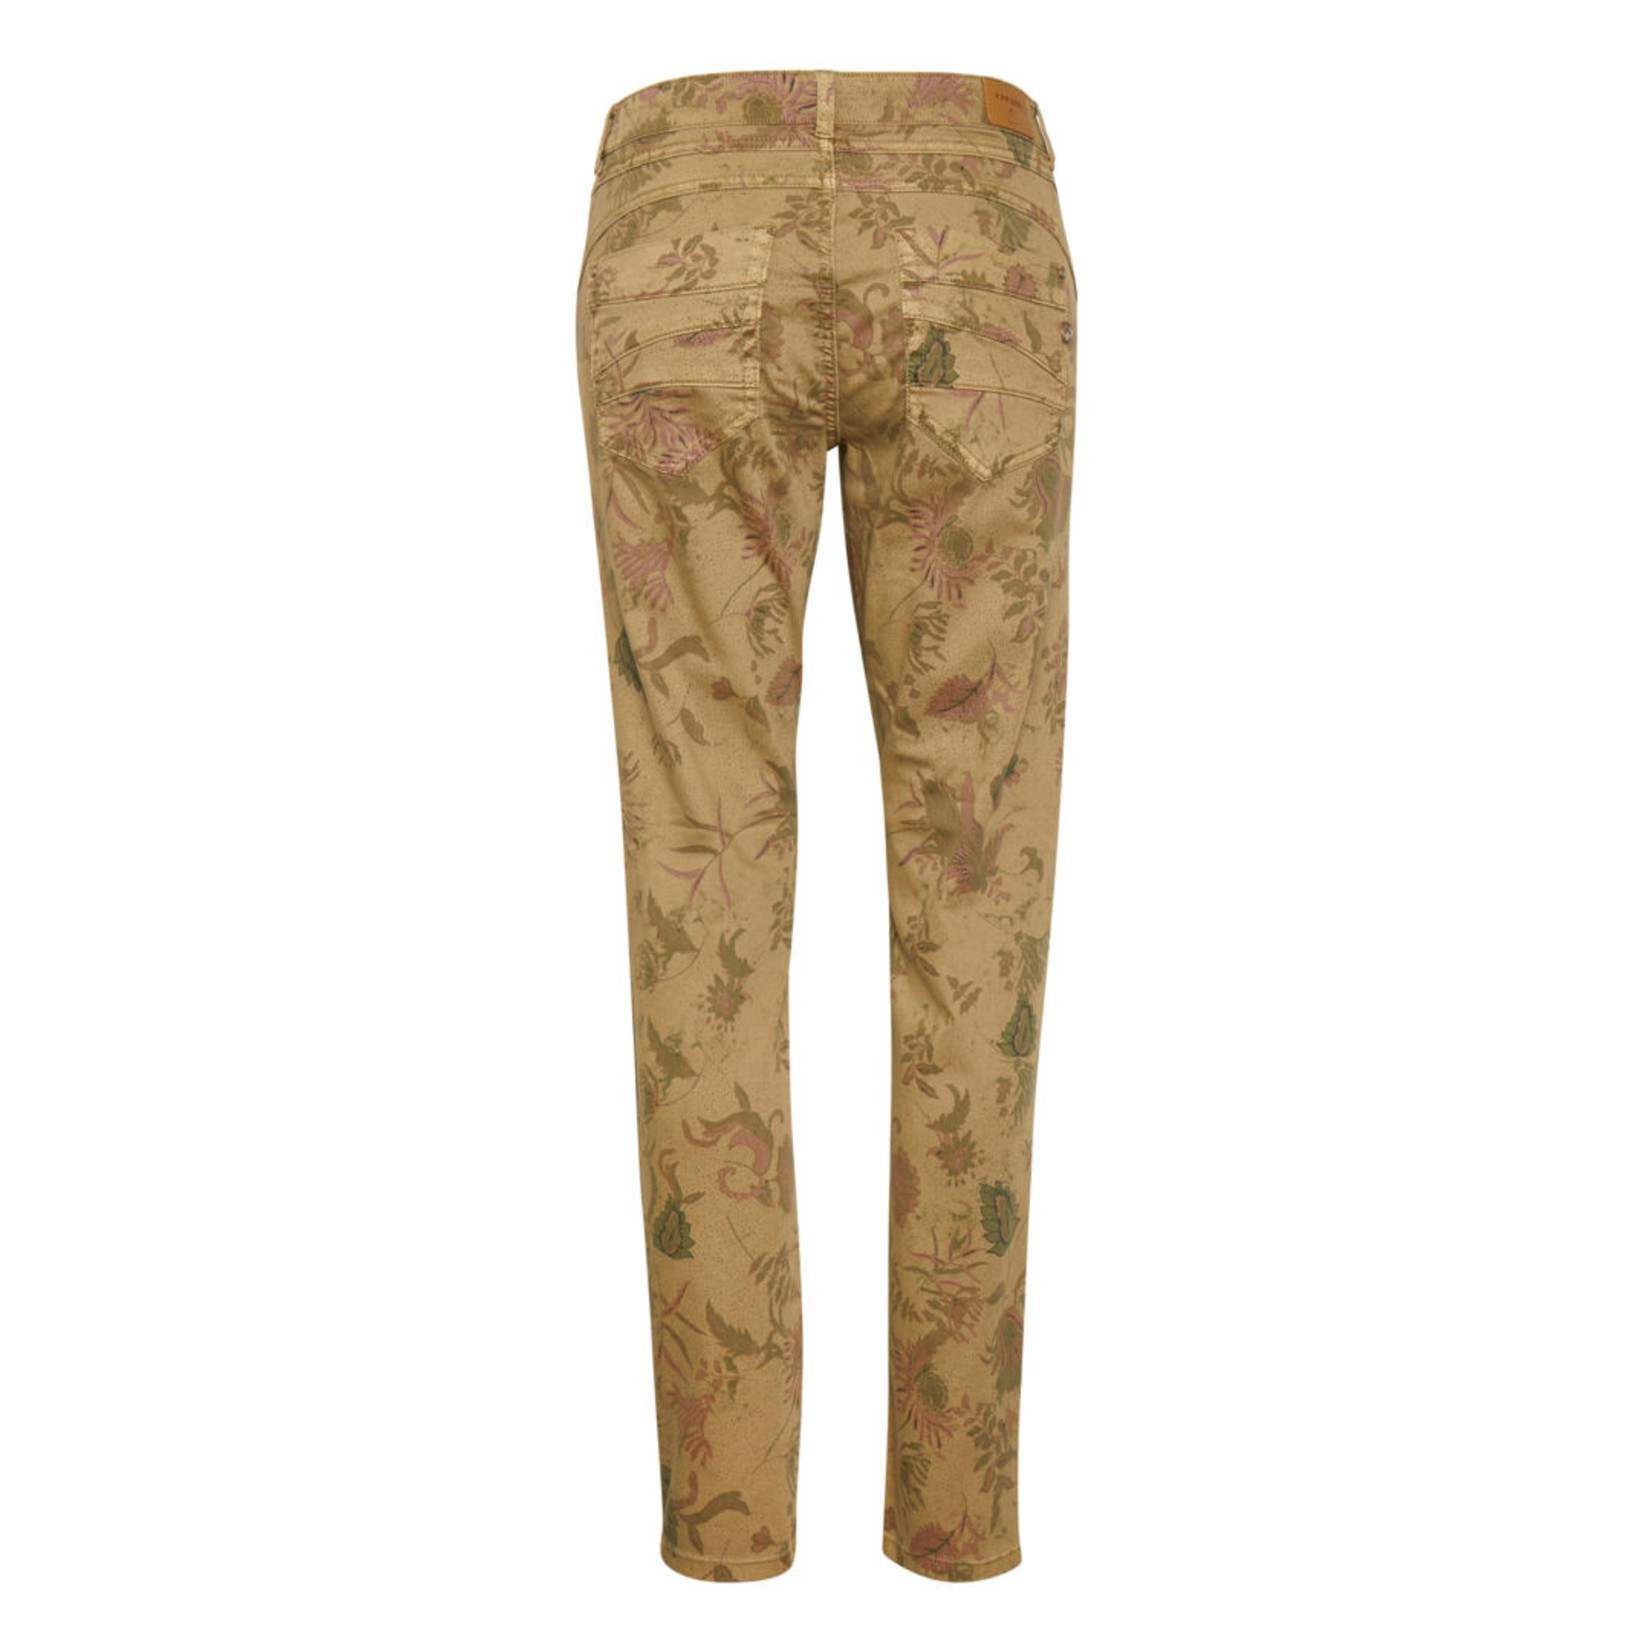 Cream Coco Fit Lotte Printed Twill Pant